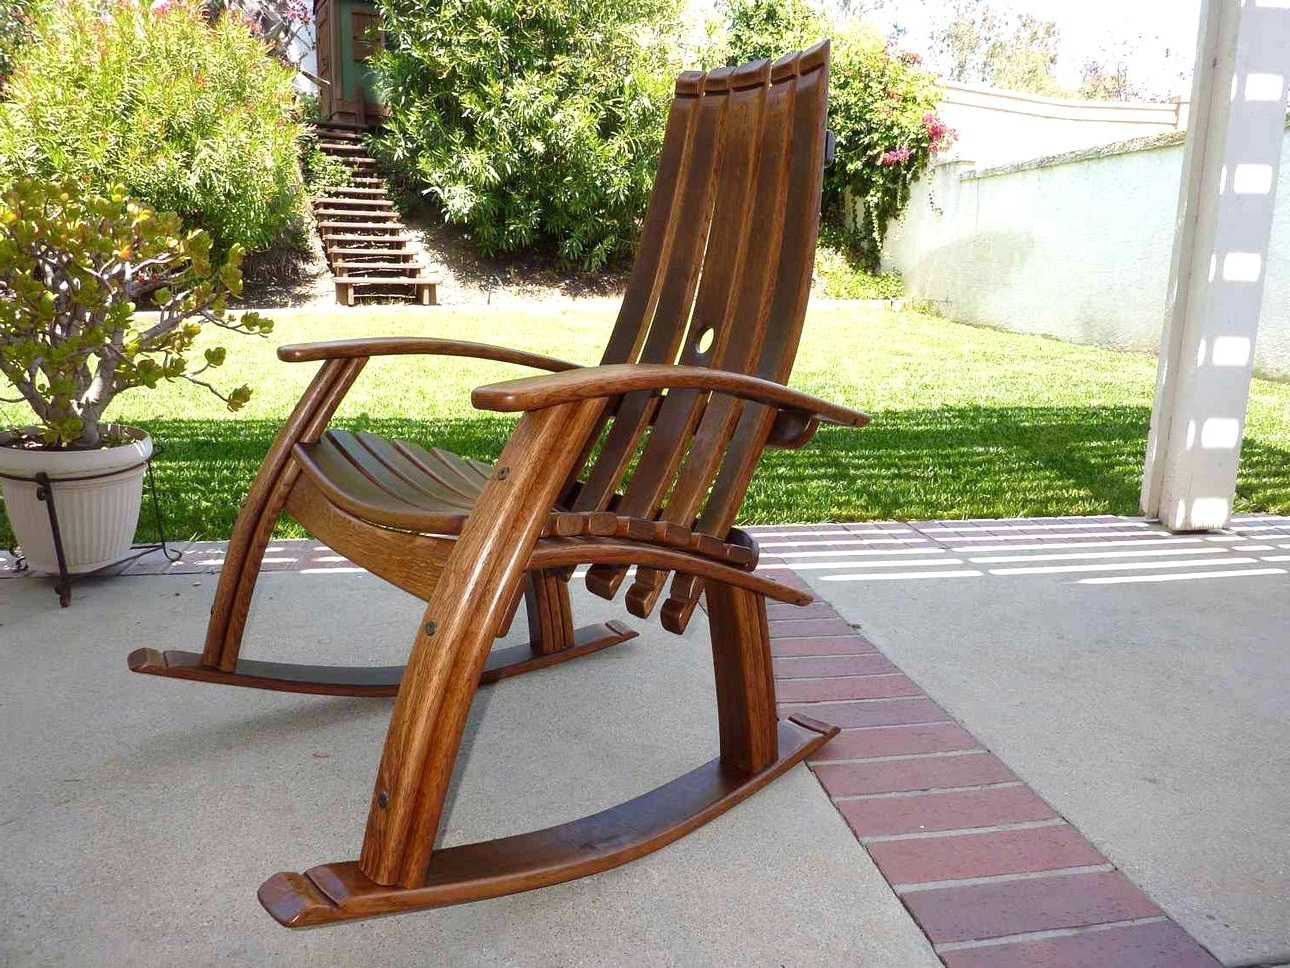 Preferred Rocking Chair Outdoor Wooden Intended For Outdoor Wooden Rocking Chairs Design – Home Interior And Furniture (View 13 of 20)